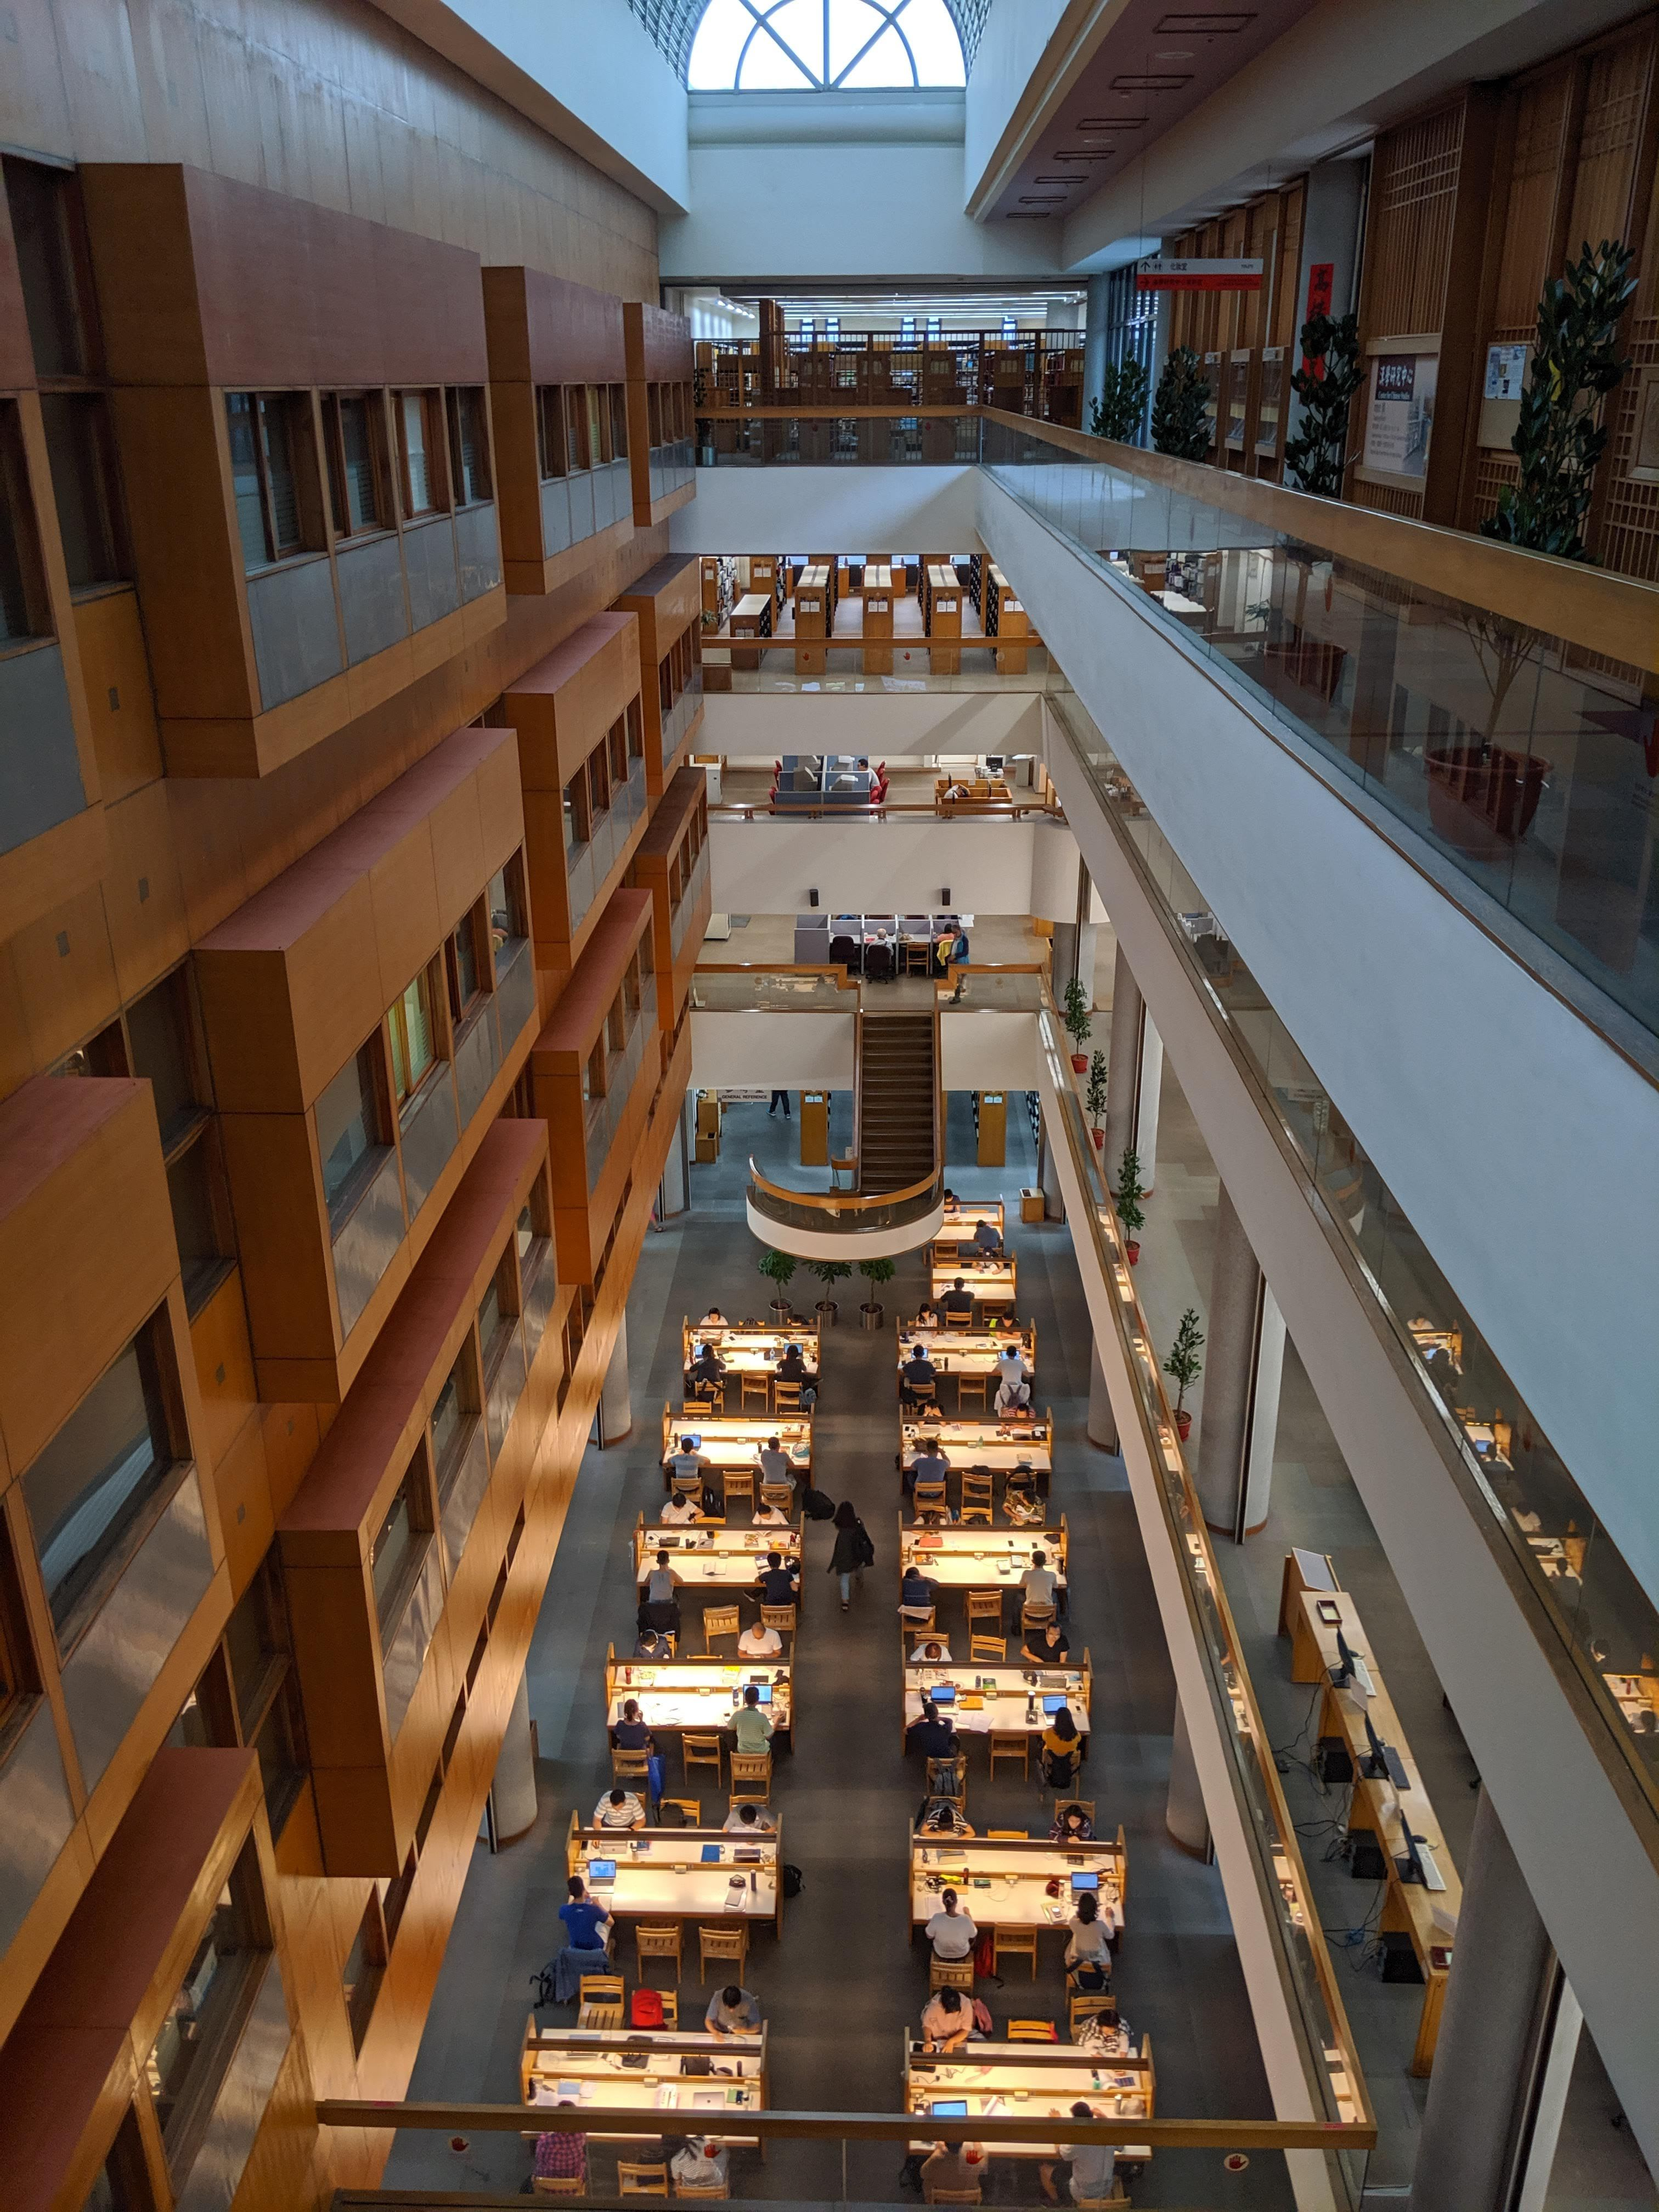 Photo of the interior of Taiwan National Library.